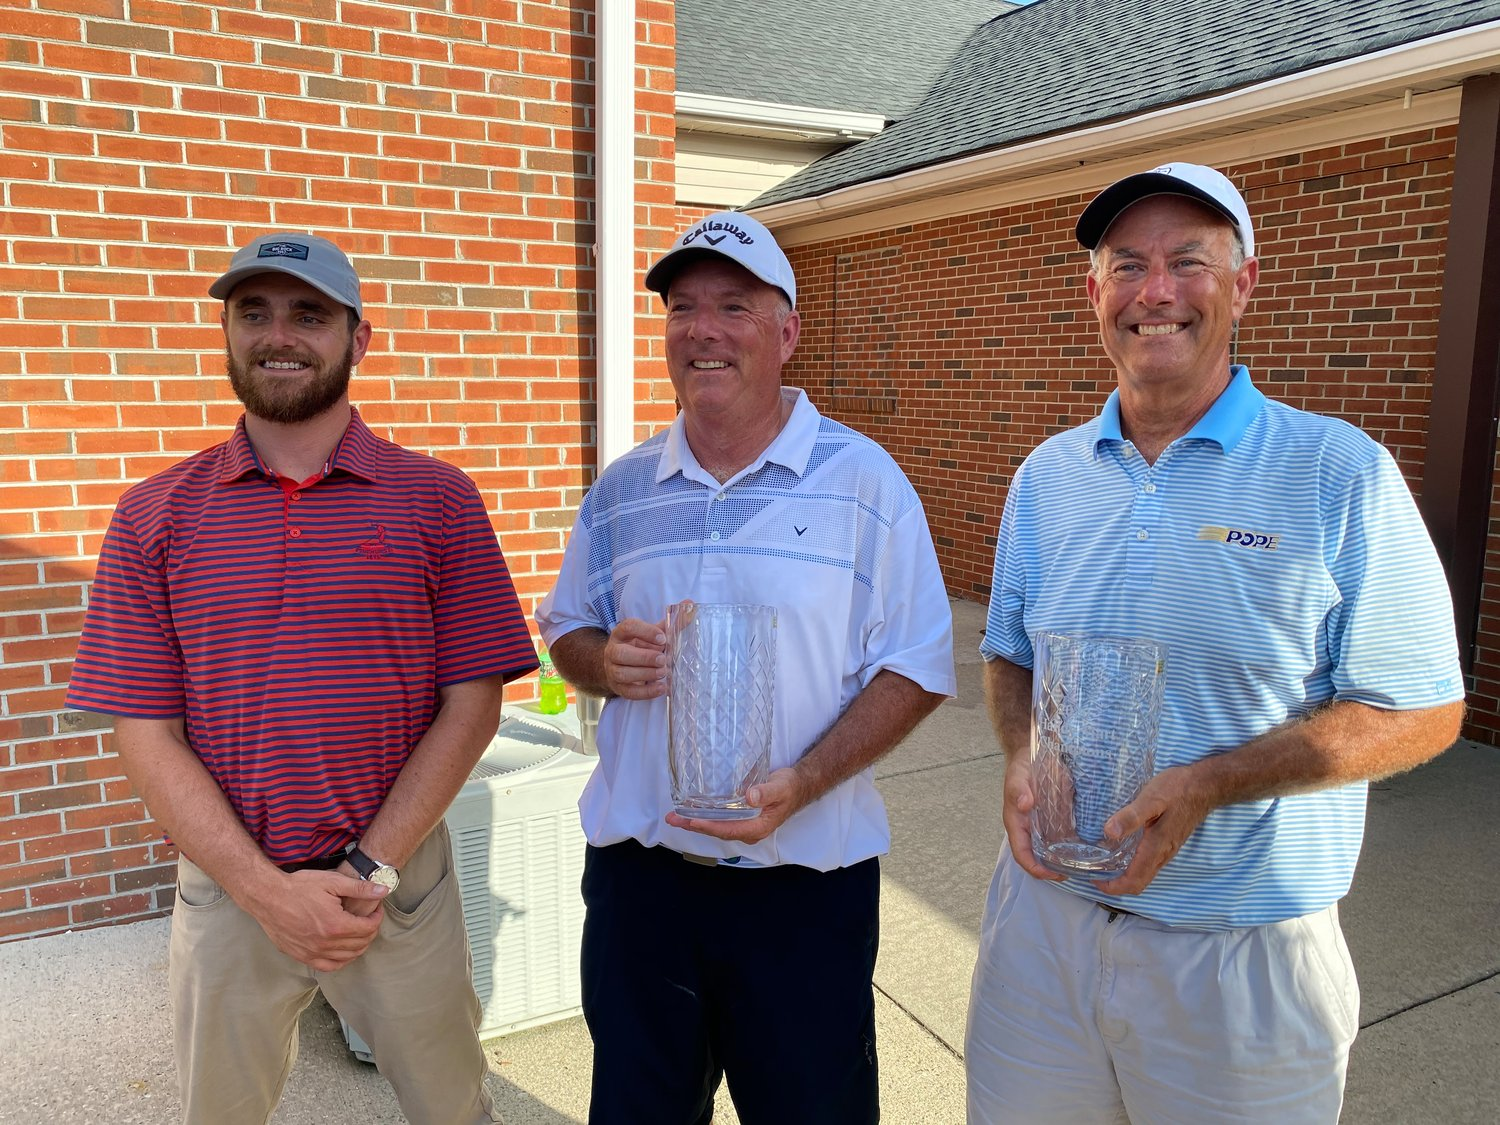 Troy Herring (center) and Judson Pope (right) claimed the Championship Flight and two crystal vases during the Southern Wayne Country Club Handy Mart Tournament contested this past weekend. Standing with Herring and Pope is Kyle Best, golf pro at SWCC.